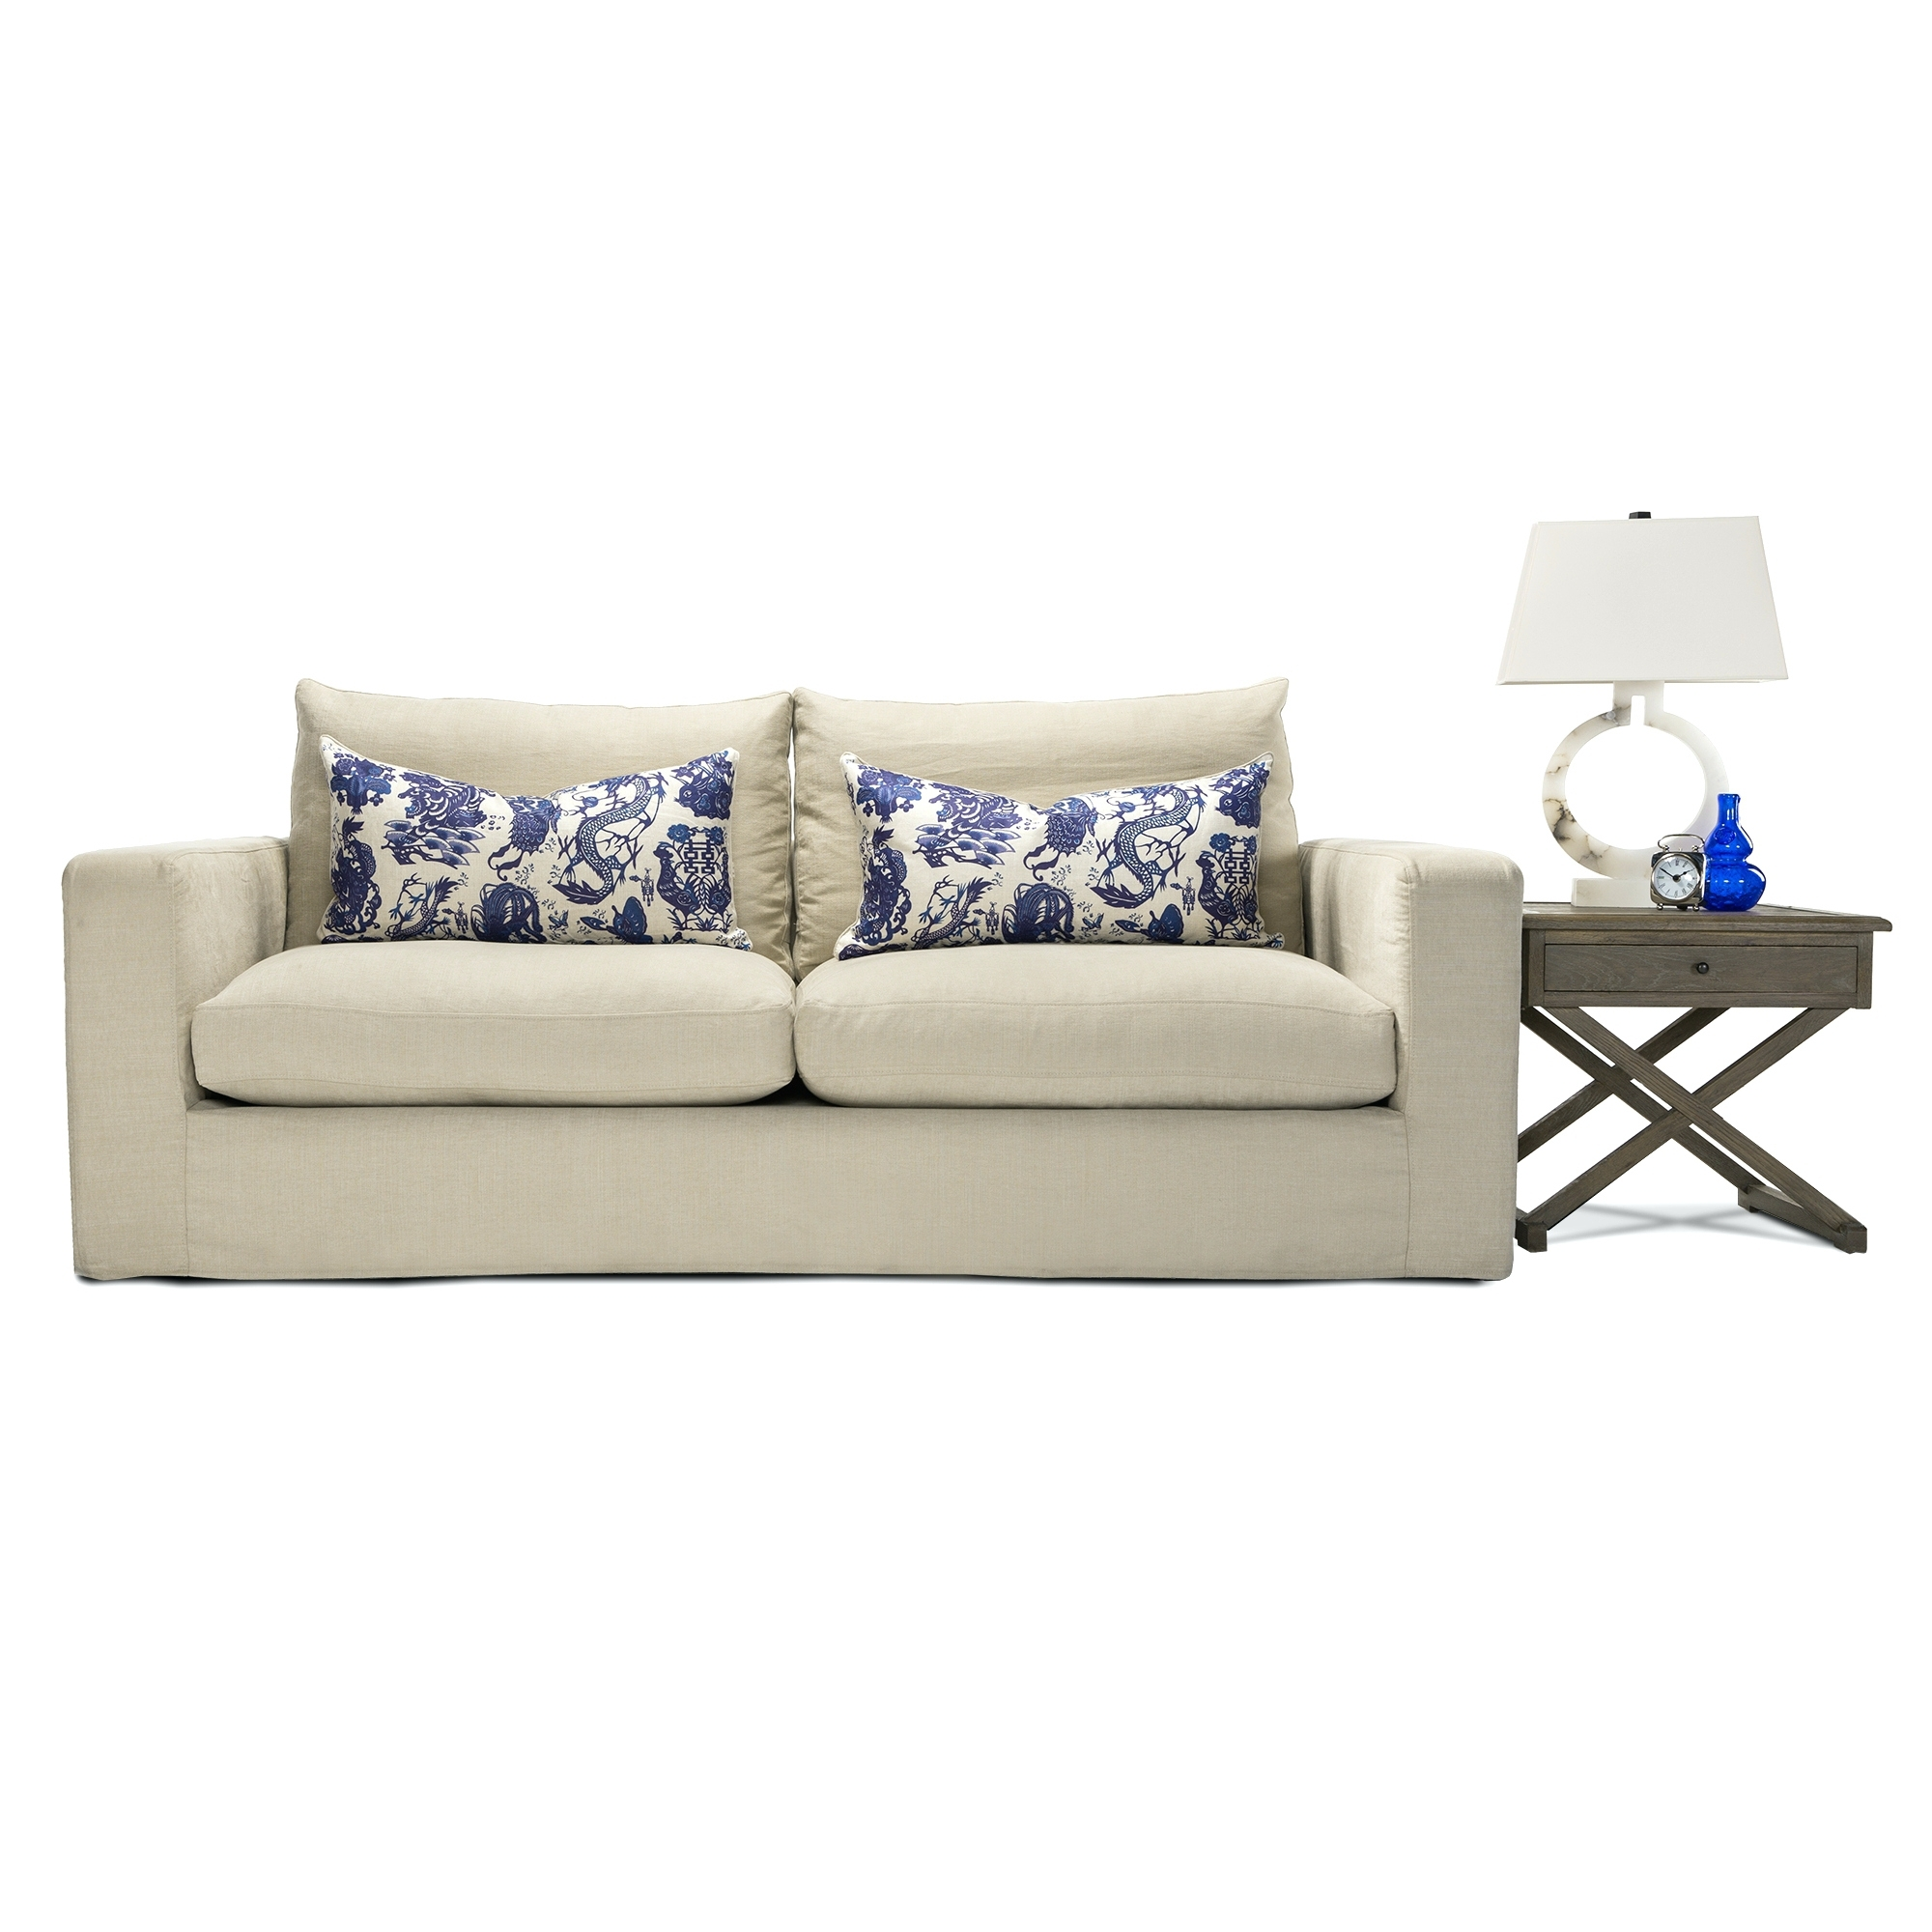 Current Varossa Chaise Lounge Recliner Chair Sofabeds Pertaining To Bed Bath Beyond Chaise Lounge Chairs • Lounge Chairs Ideas (View 4 of 15)